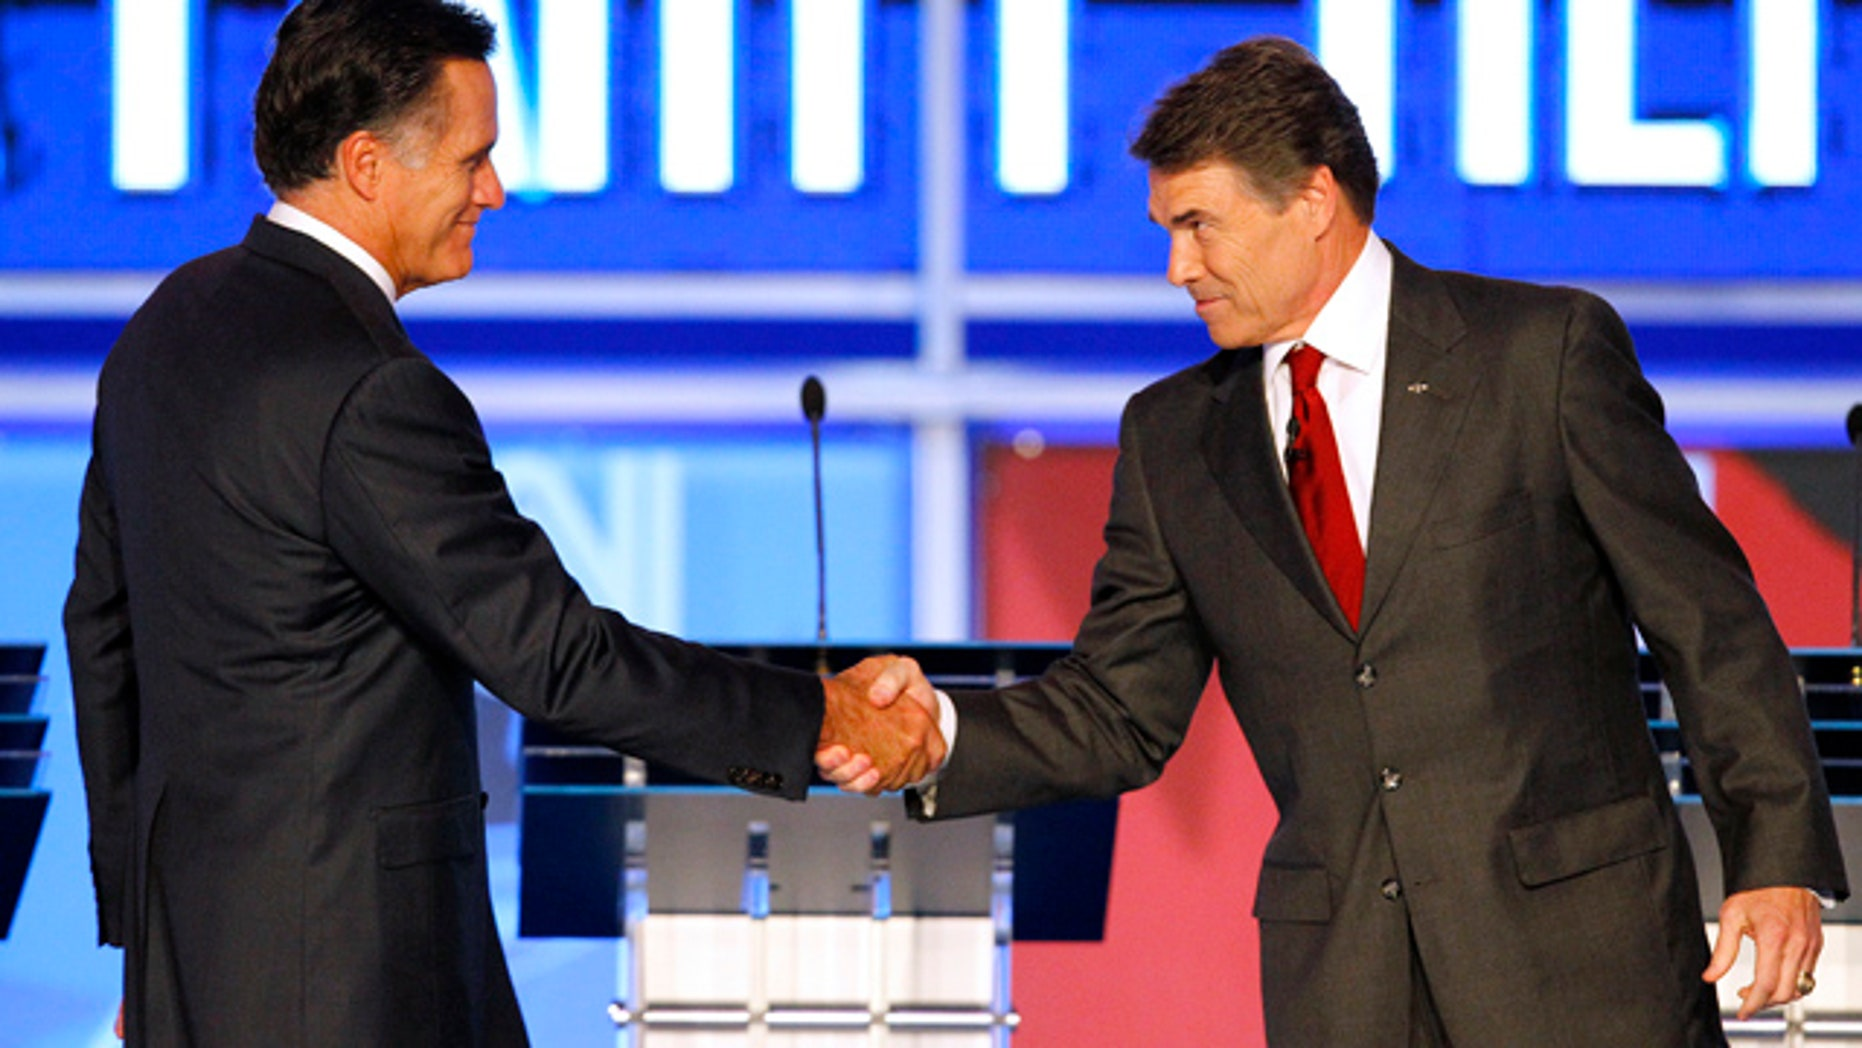 Sept. 12: Republican presidential candidates former Massachusetts Gov. Mitt Romney shakes hands with Texas Gov. Rick Perry before the start of a Republican debate in Tampa, Fla.